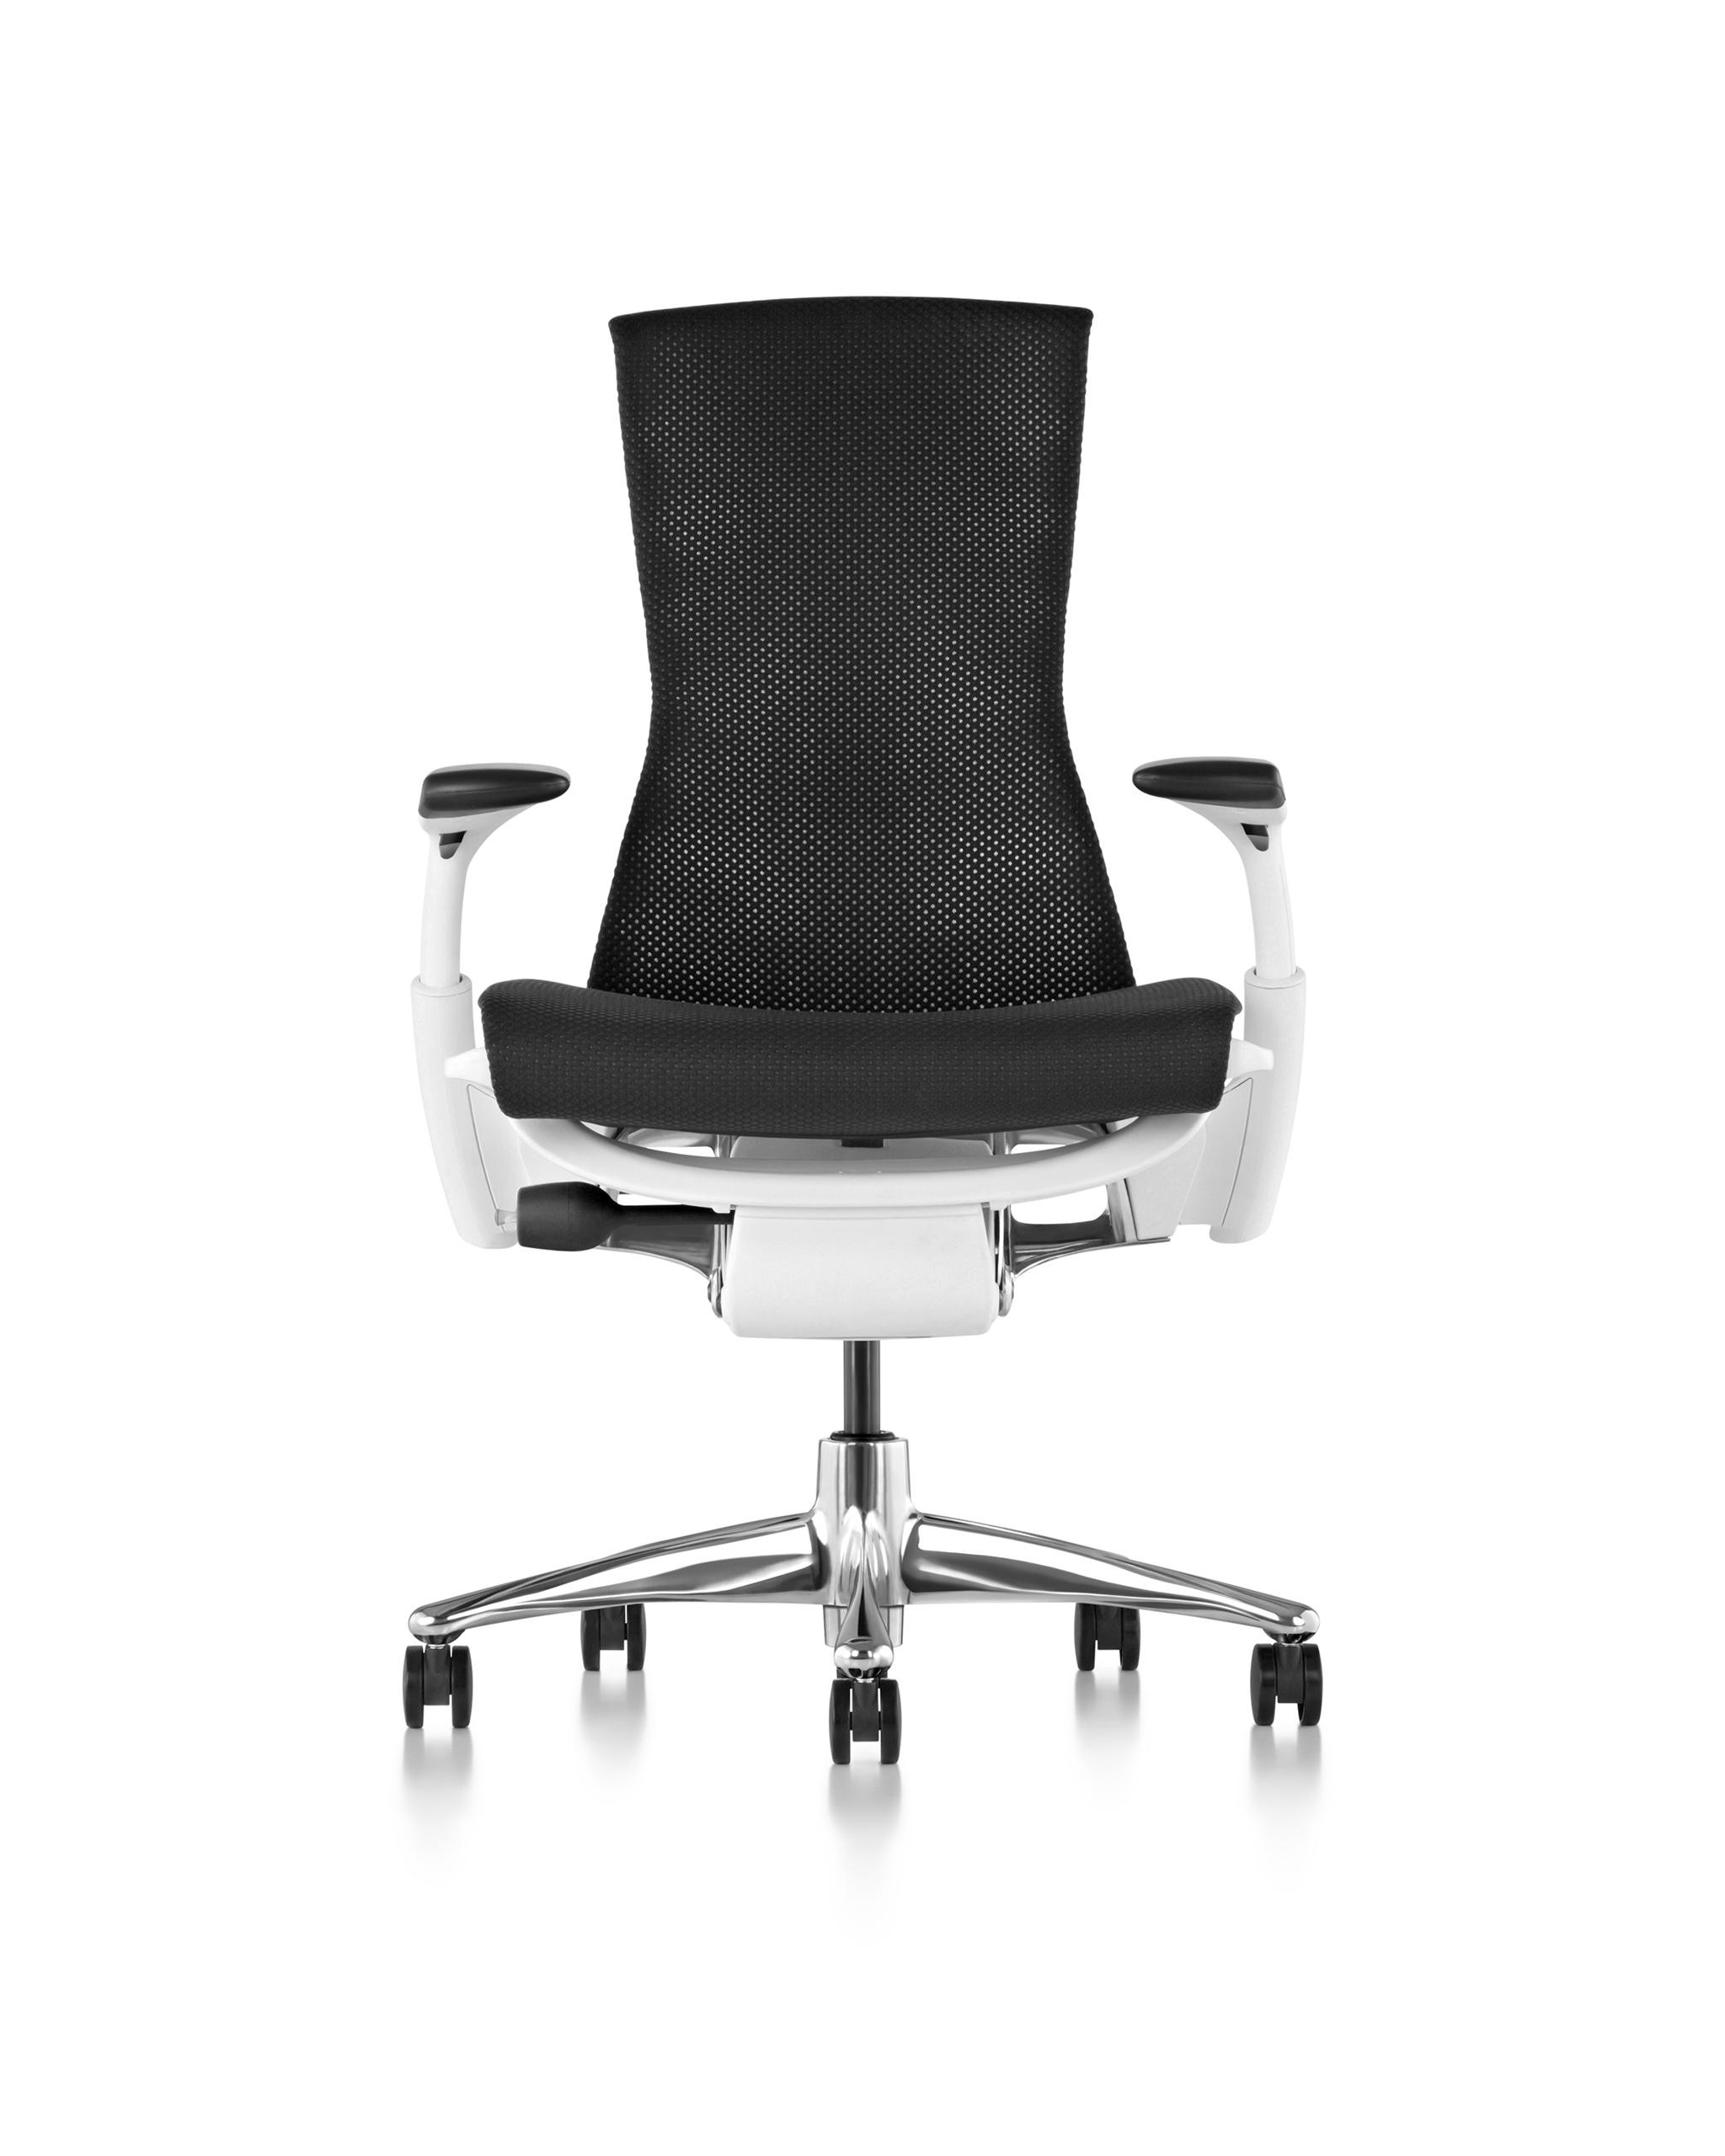 Embody Chairs Are Also Available On The Wellworking Online Store